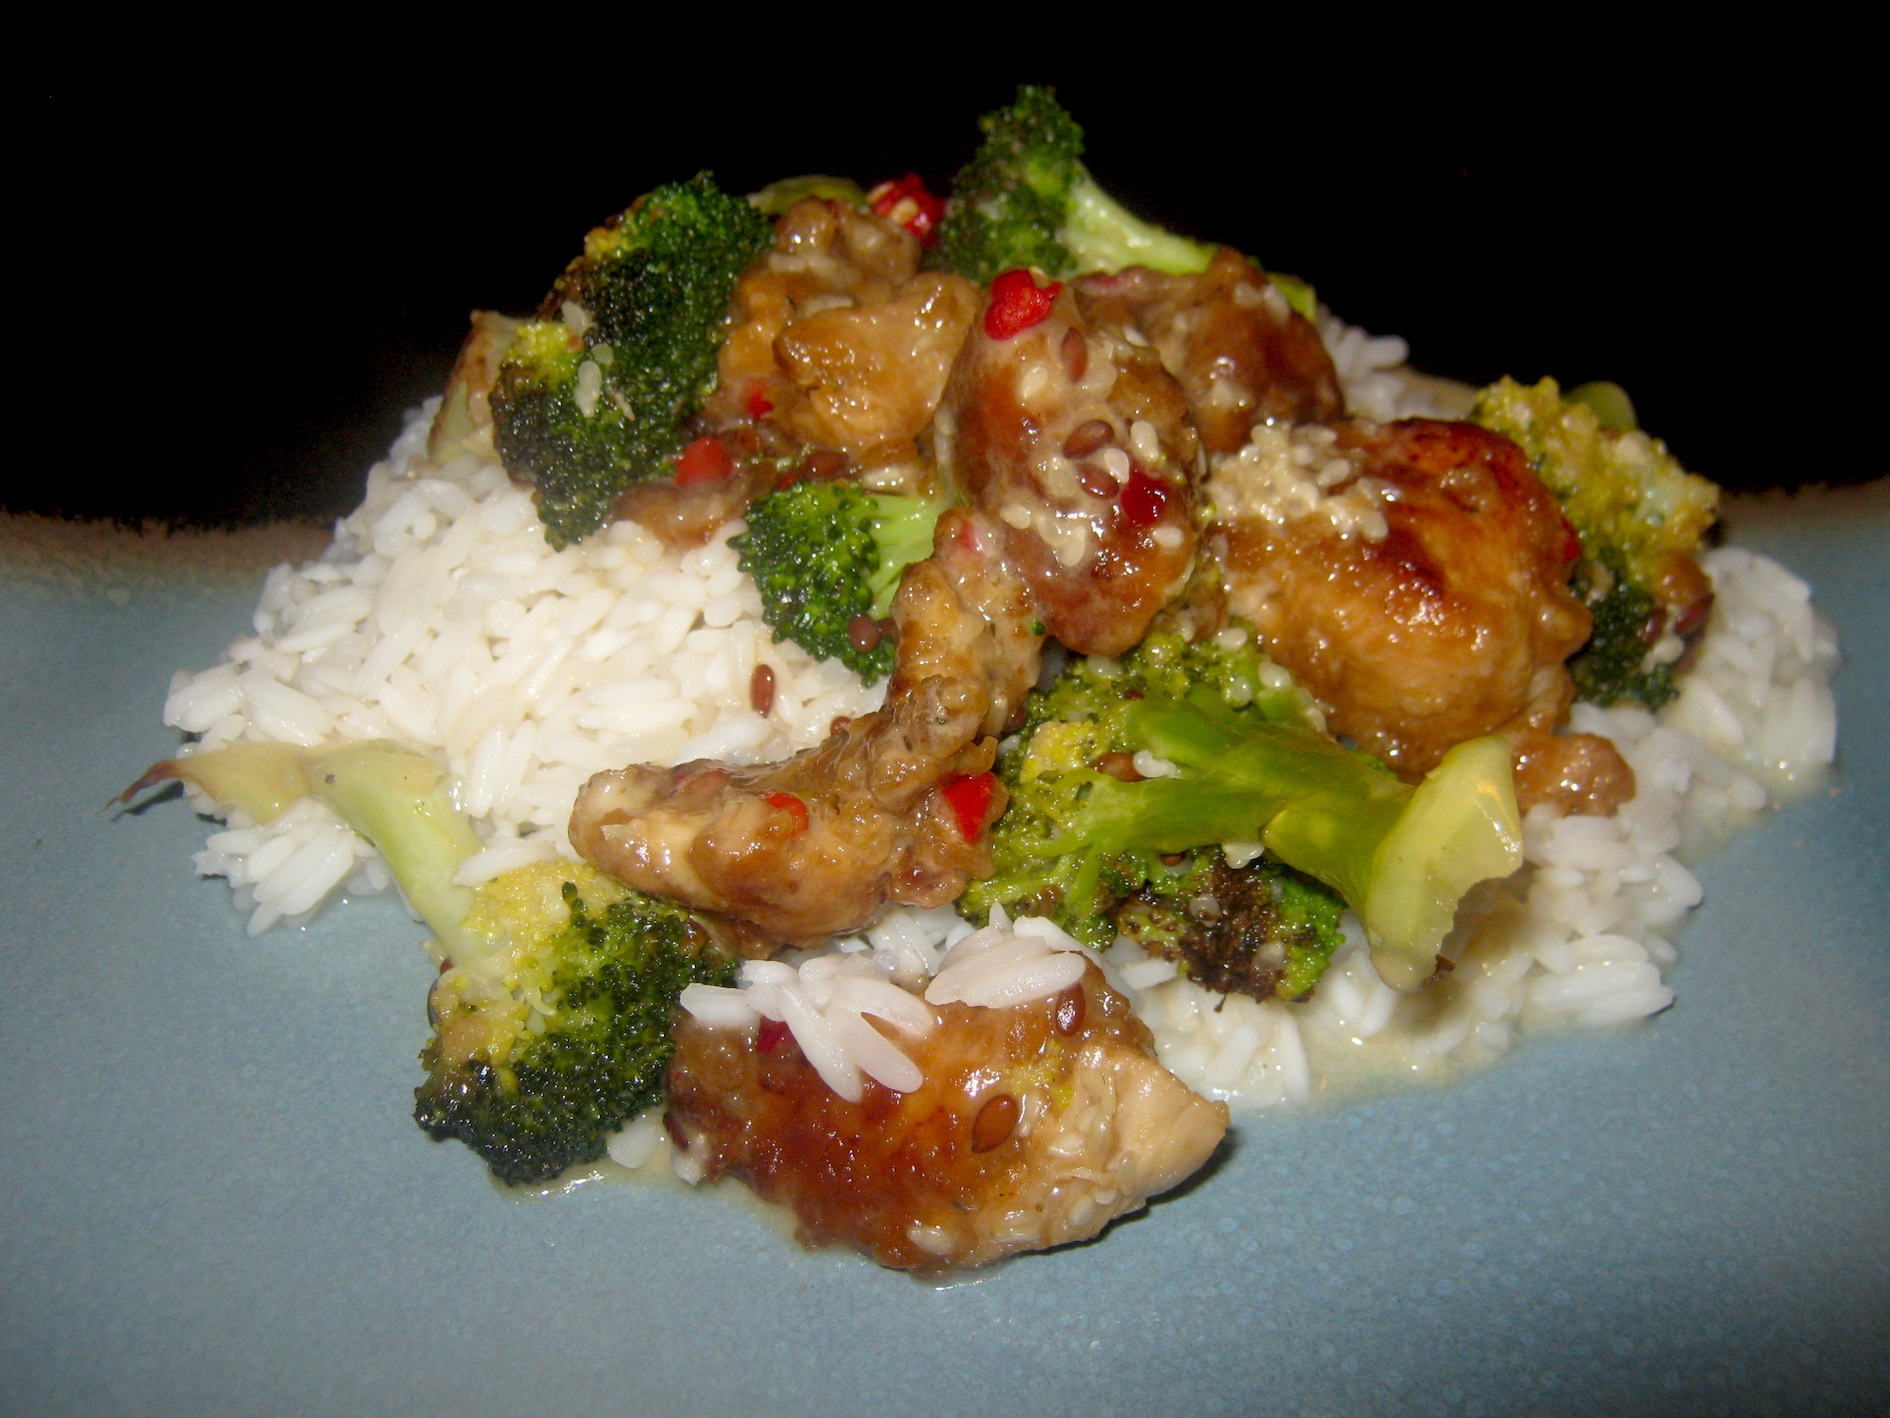 Broccoli and honey chicken on a bed of rice